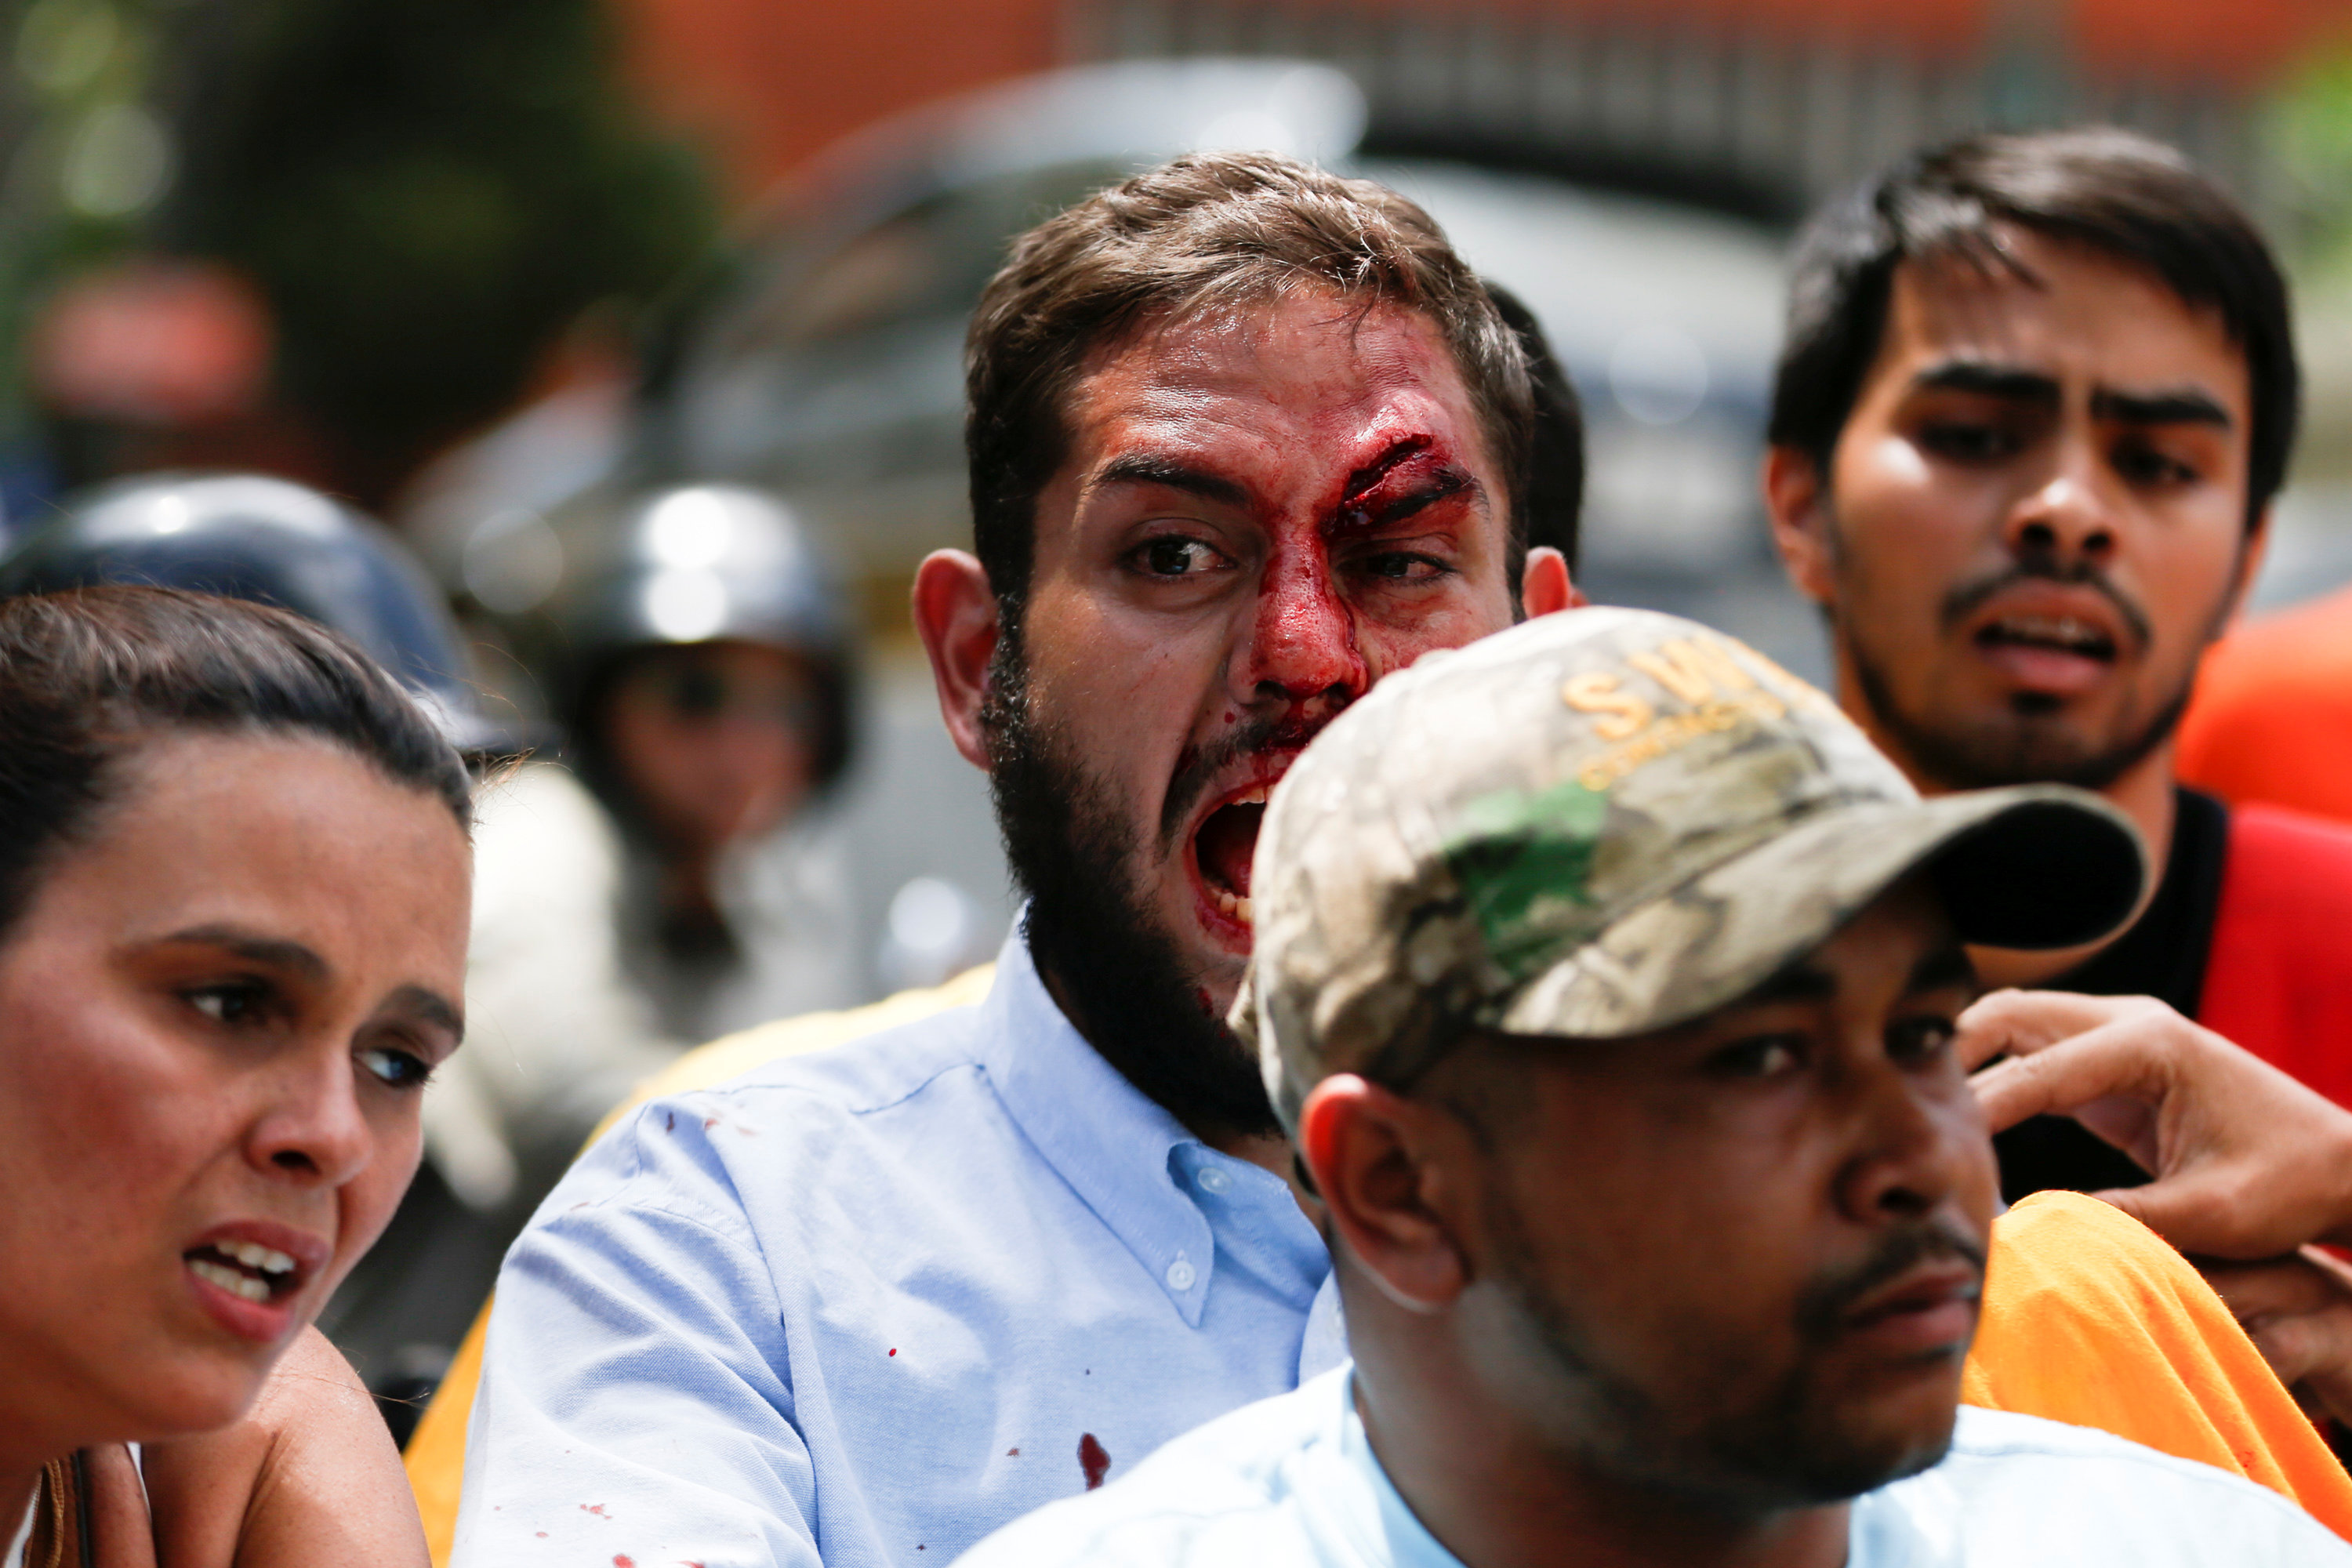 ATTENTION EDITORS - VISUAL COVERAGE OF SCENES OF INJURY OR DEATH  Juan Requesens, deputy of the Venezuelan coalition of opposition parties (MUD), shouts after been injured during clashes with pro-government supporters outside the offices of the Venezuela's ombudsman in Caracas, Venezuela April 3, 2017. REUTERS/Carlos Garcia Rawlins  TEMPLATE OUT